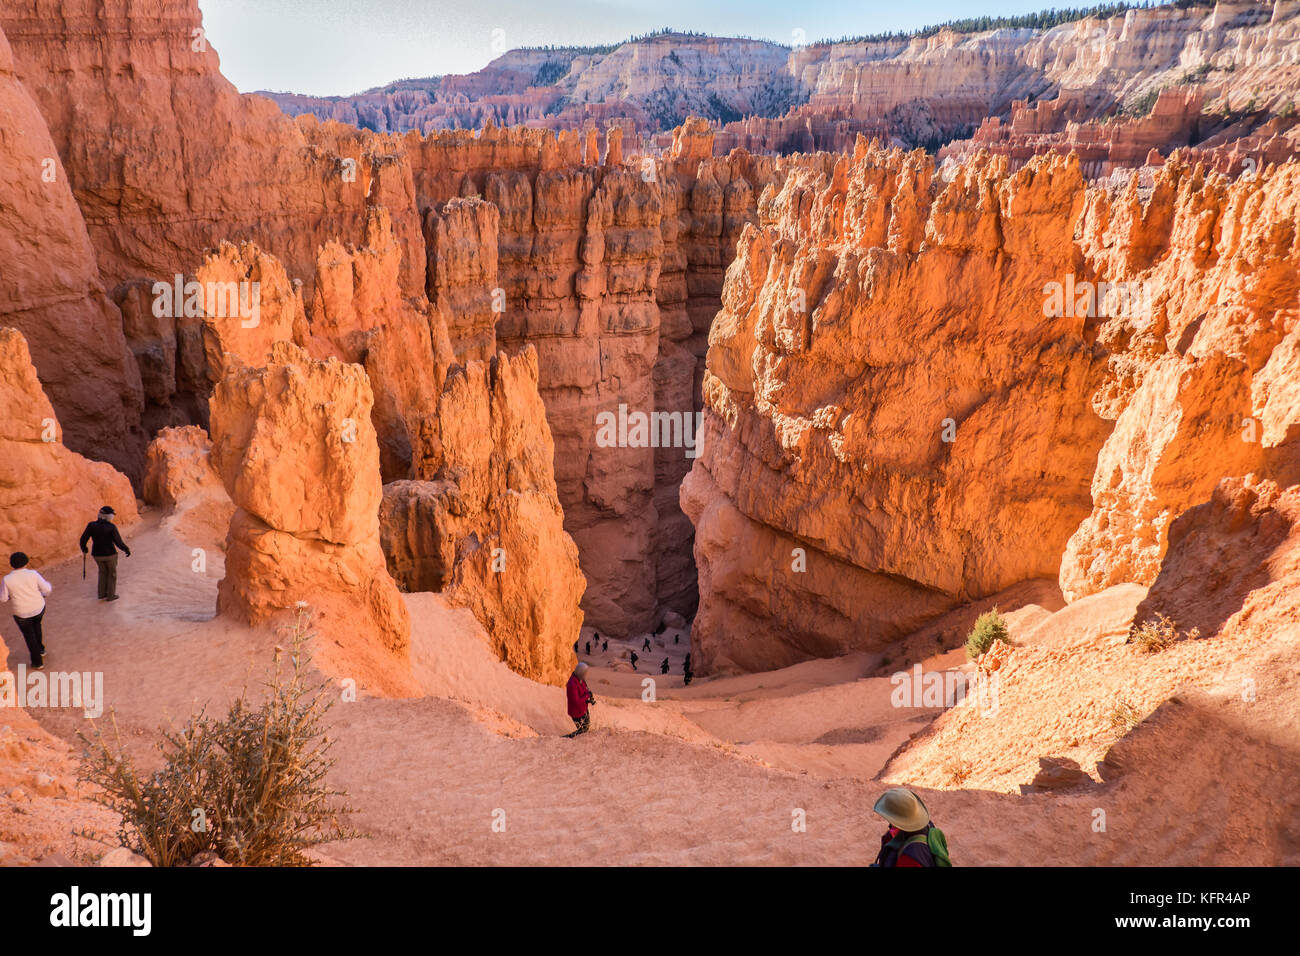 Bryce Canyon down to Wall street in Utah, US - Stock Image